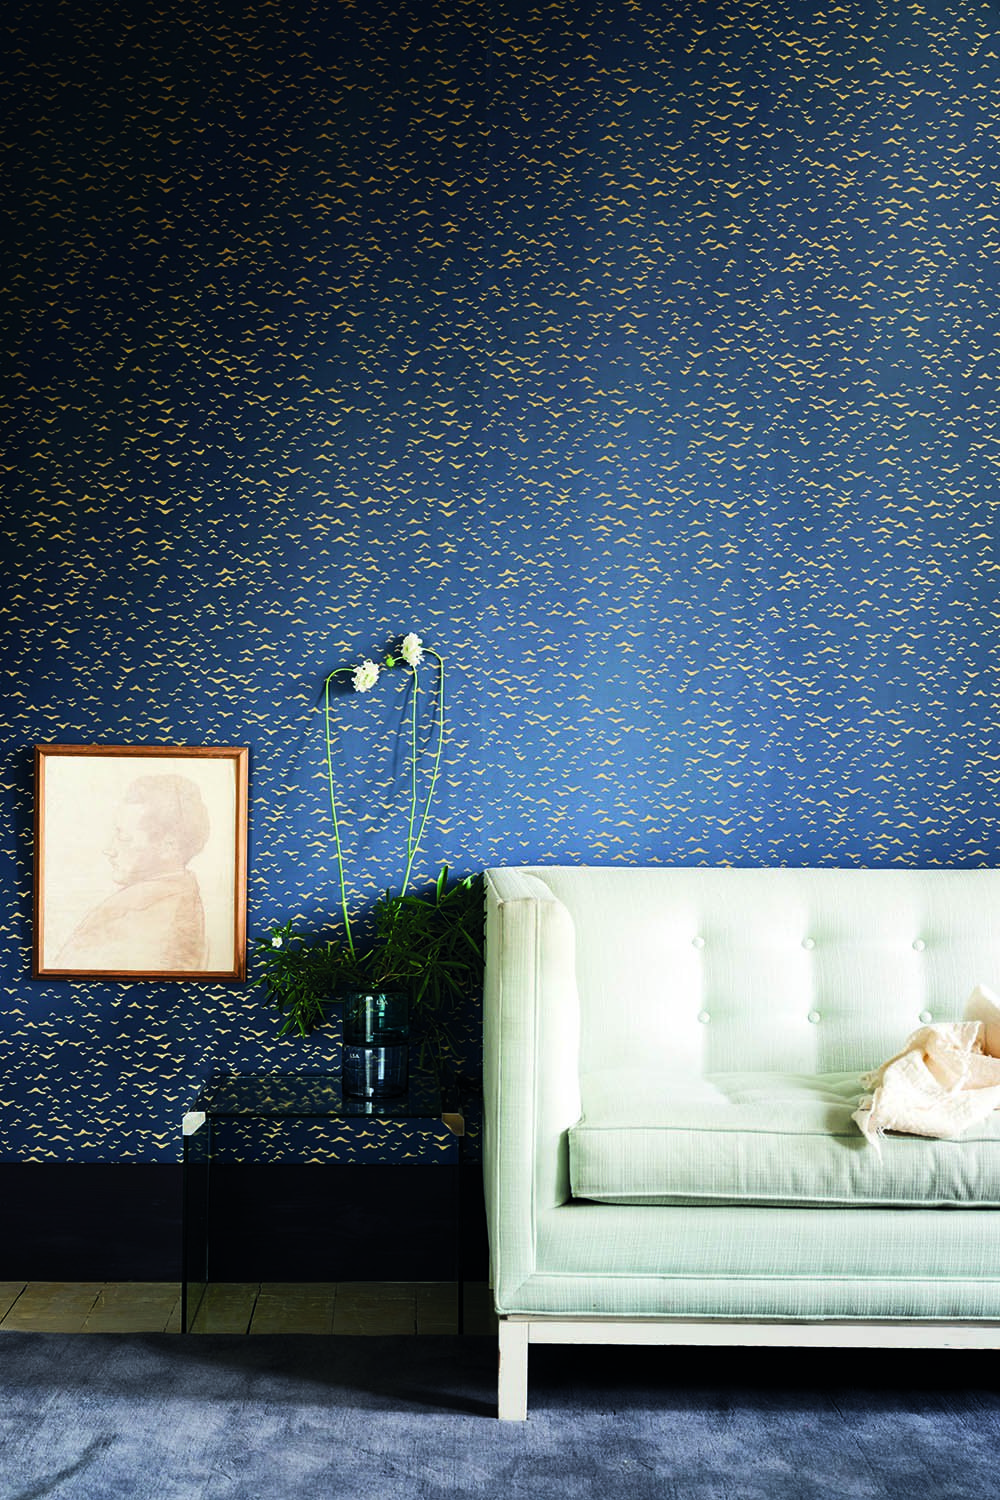 Yukutori Farrow & ball wallpaper, Farrow ball, Metallic